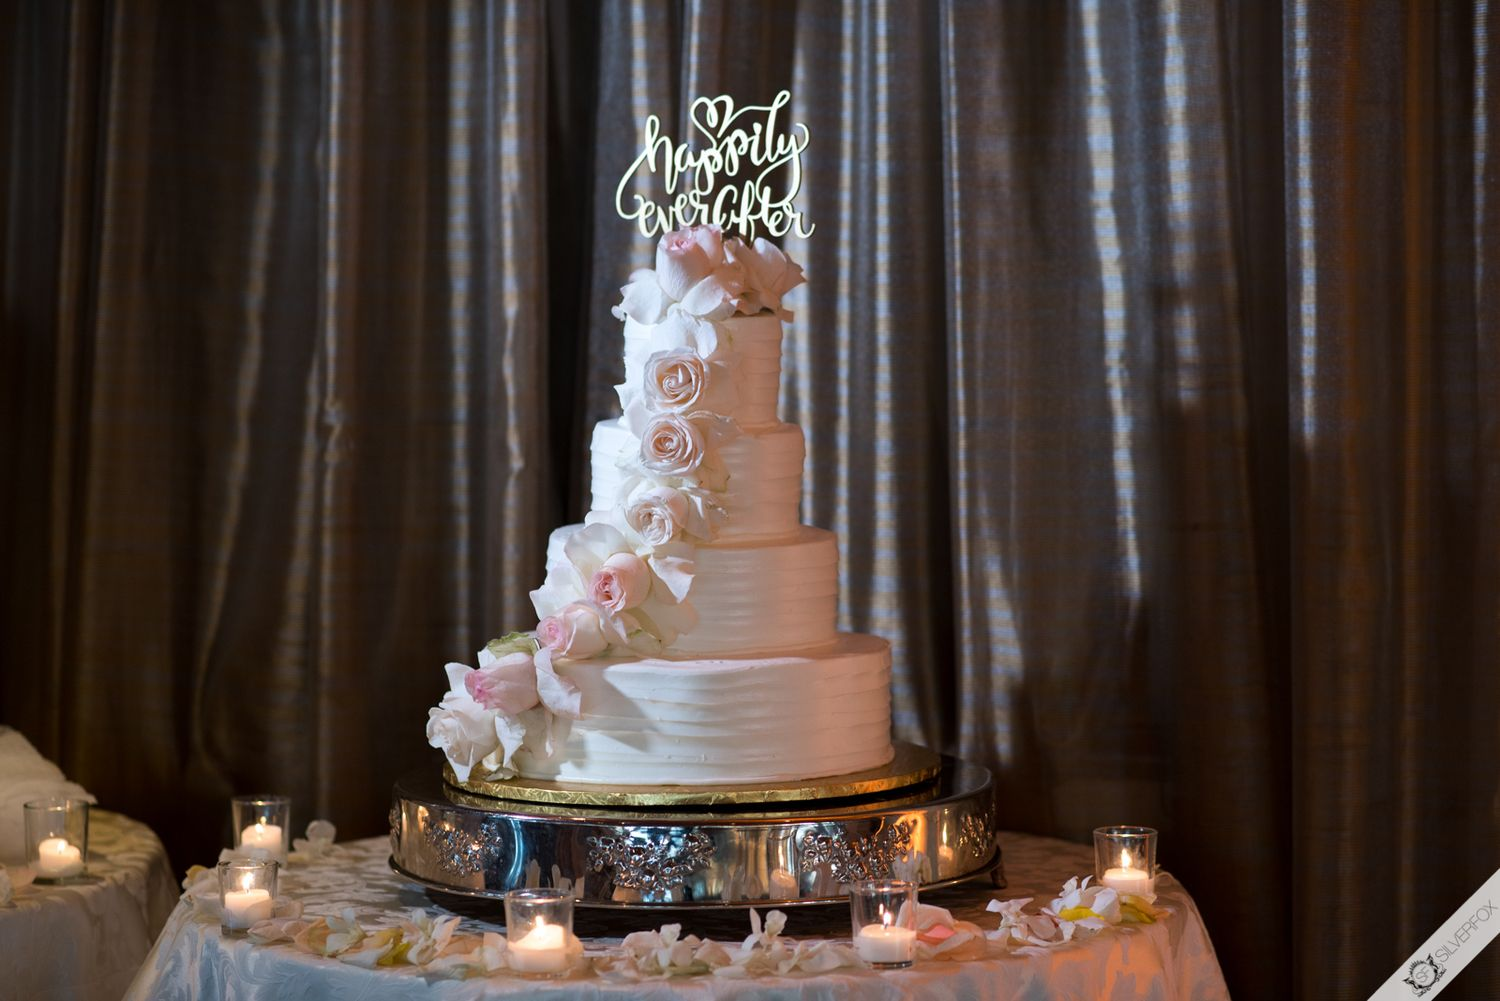 Happily ever after cake topper - Wedding photography at Carlyle on the Green - SIlverfox Weddings, Long Island wedding photo, video and dj